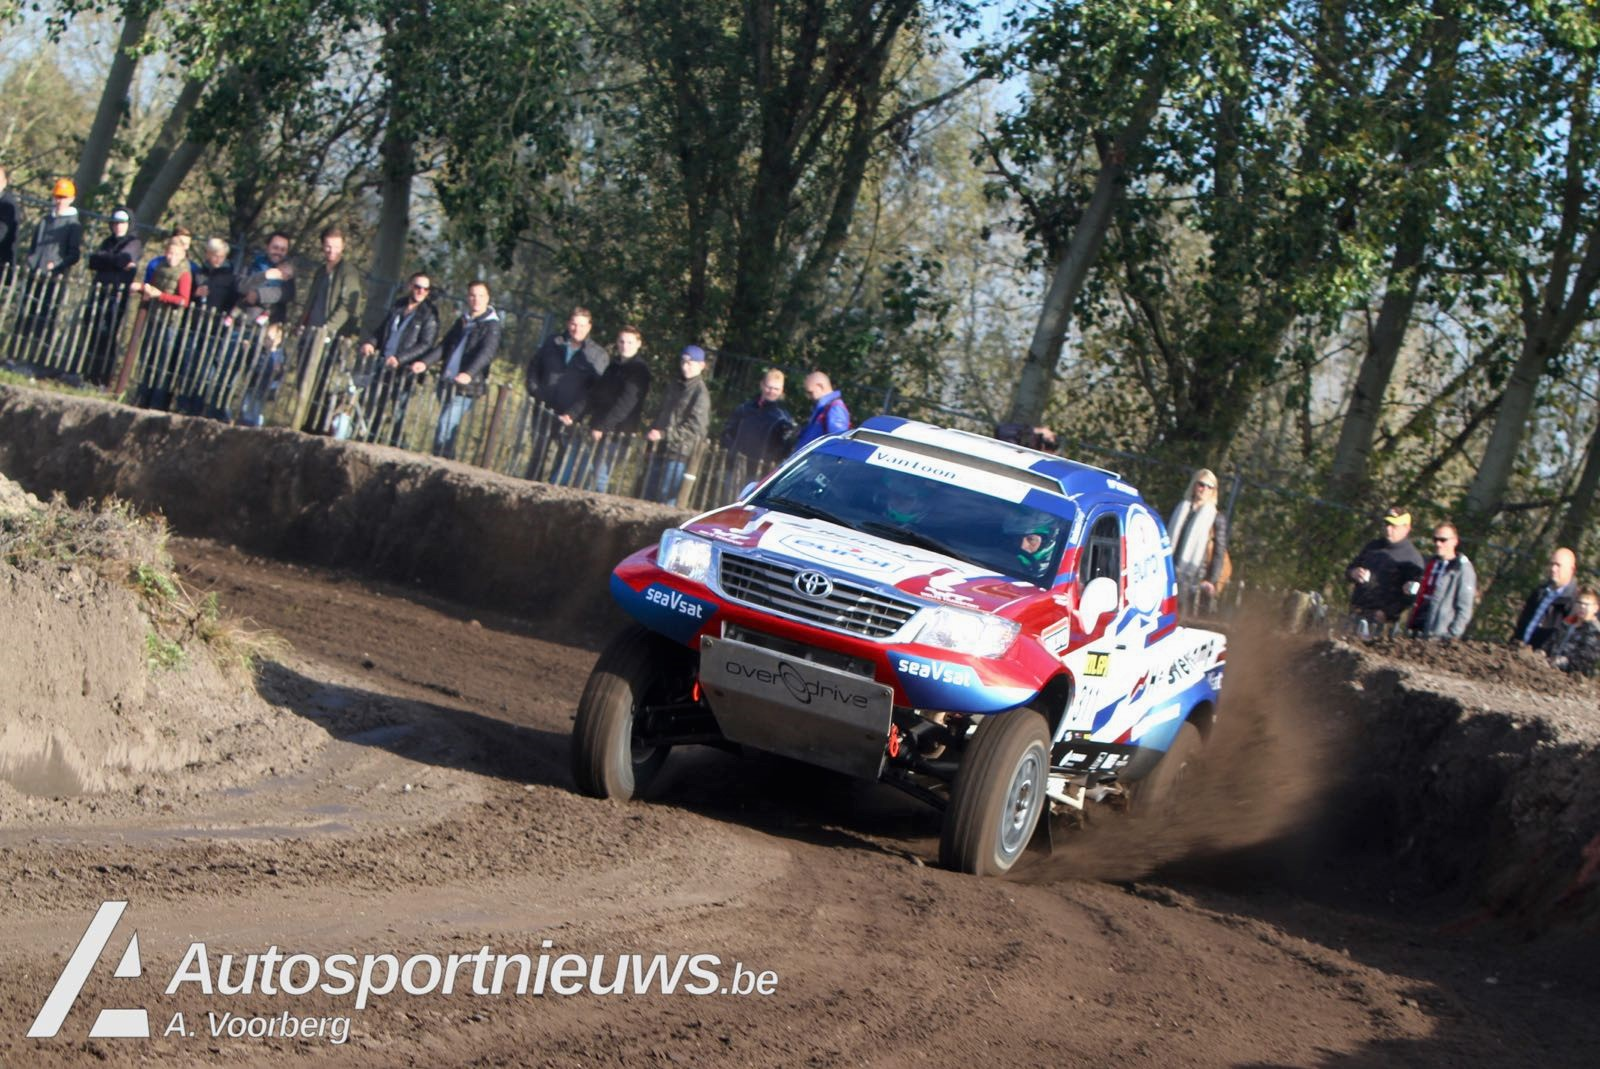 Van Loon Racing | Van Loon prolongeert winst in tiende Pre-Proloog